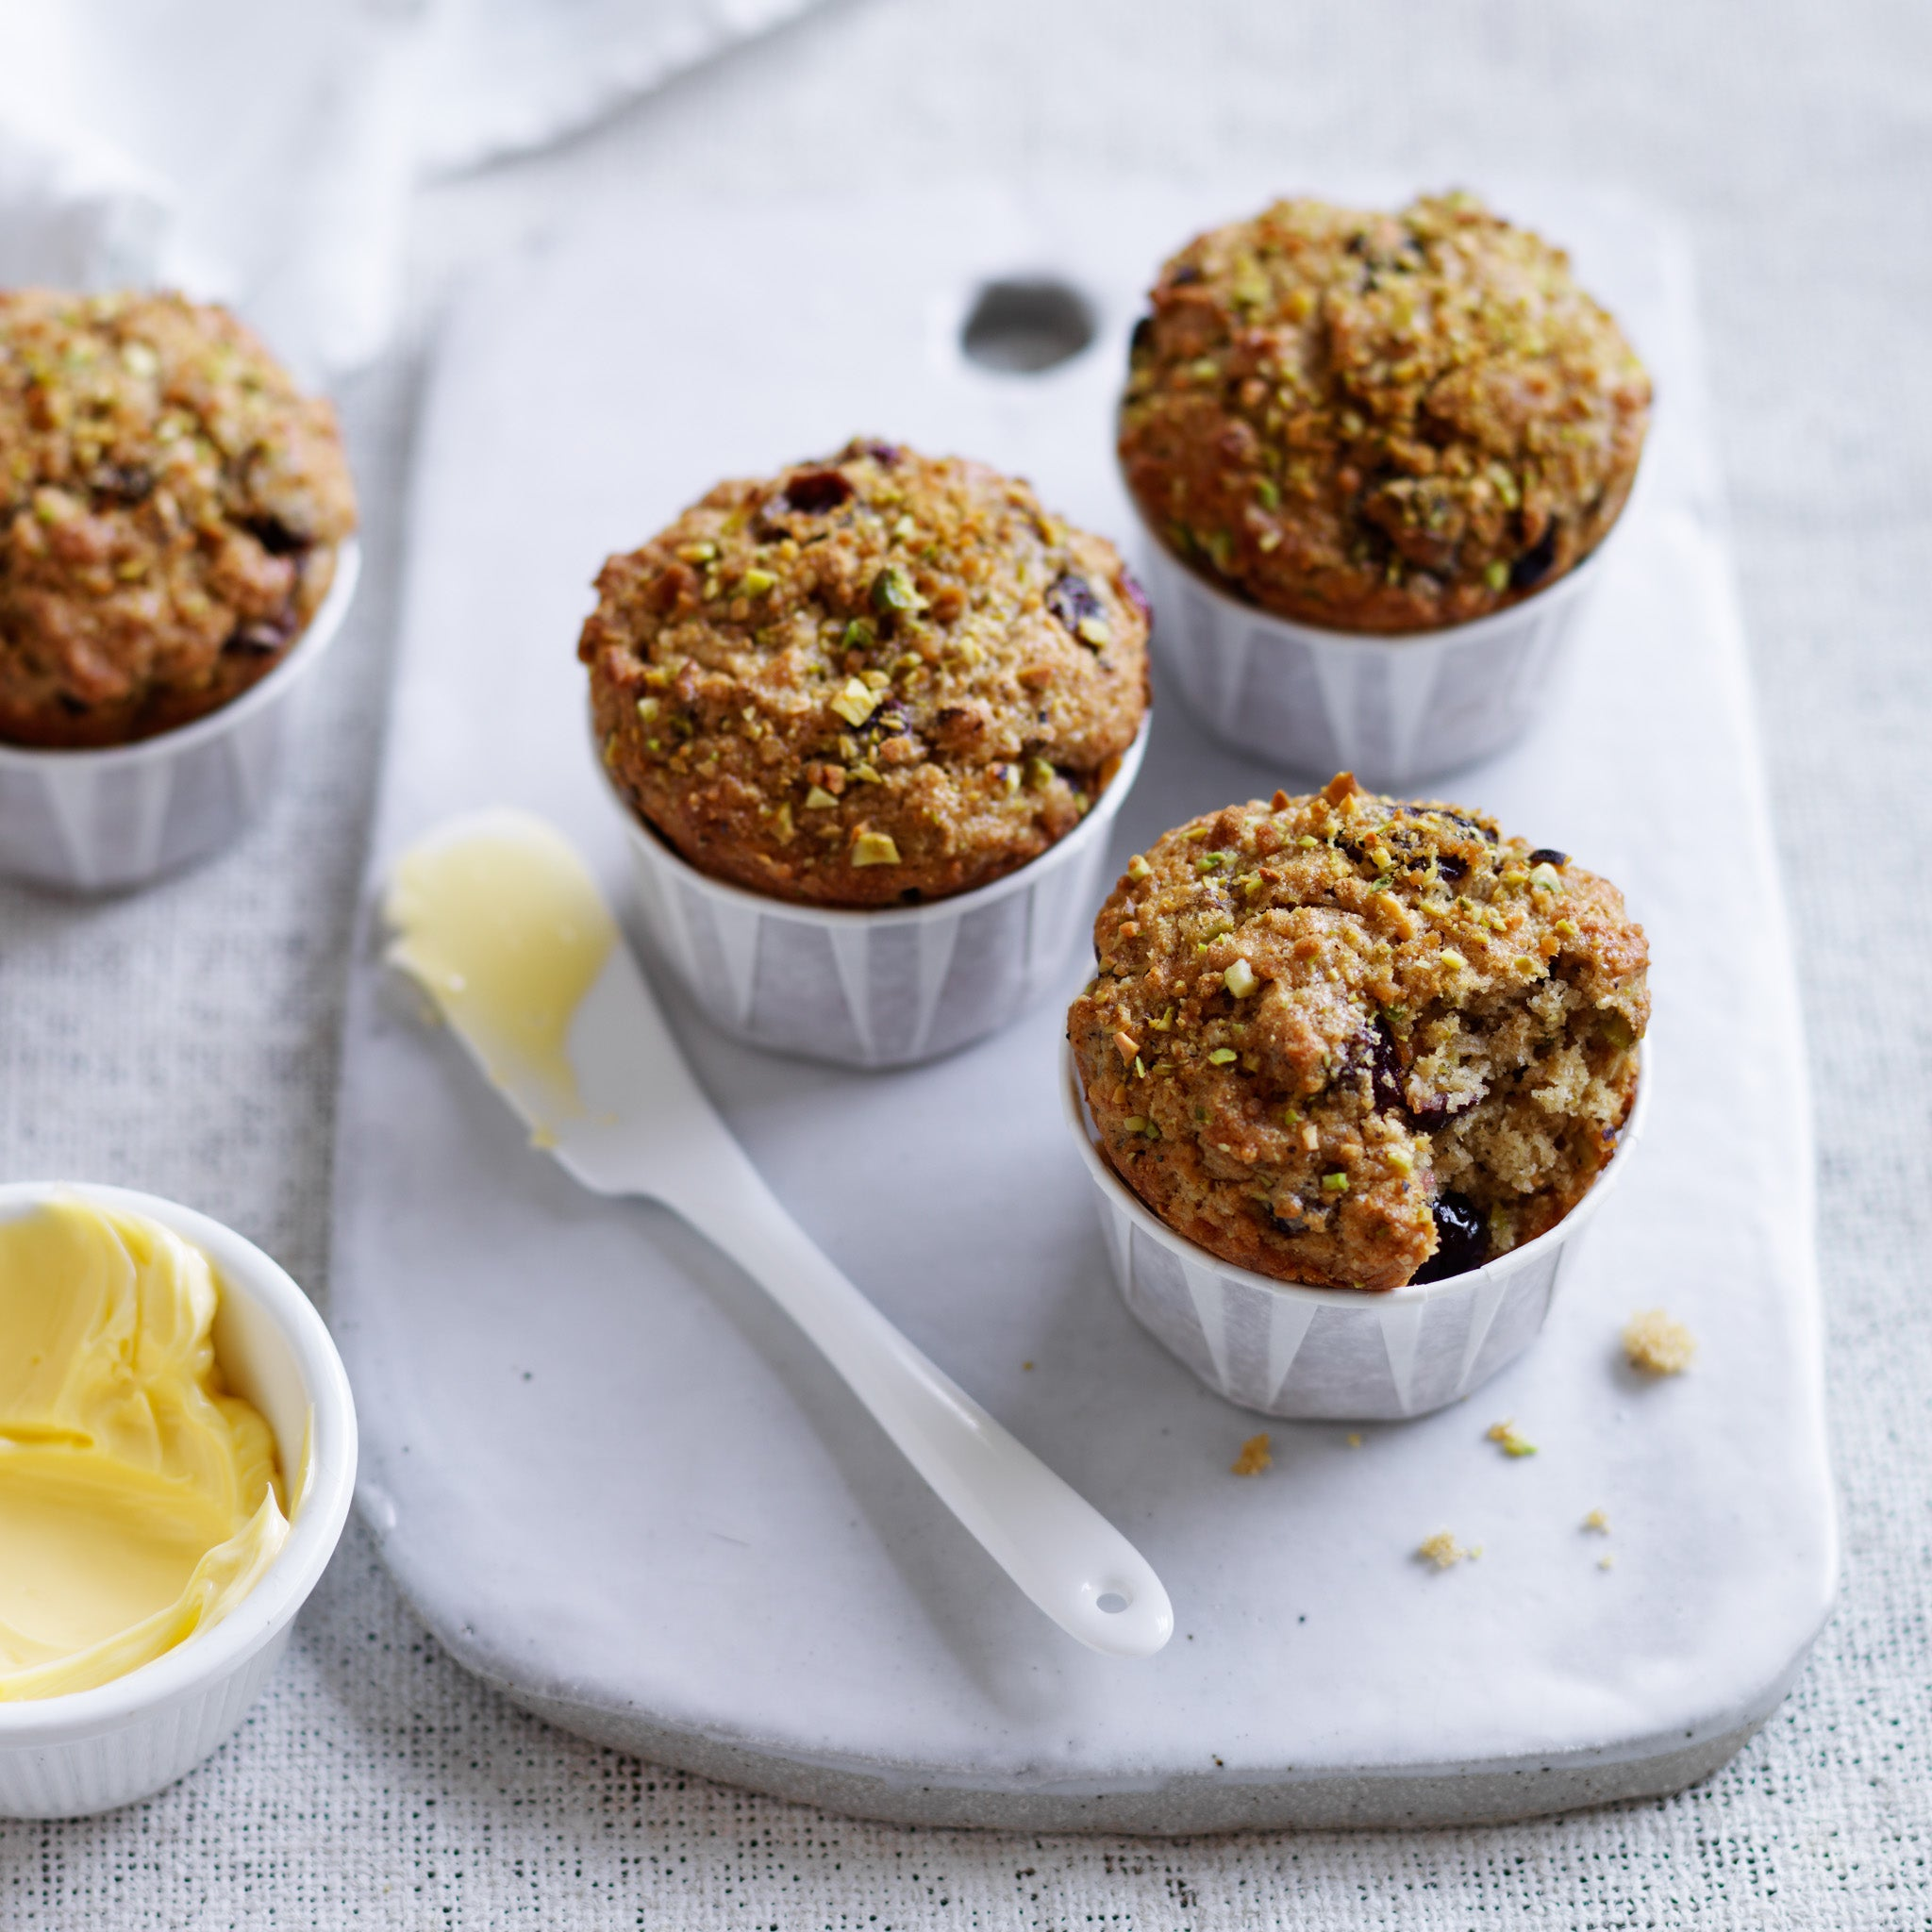 Cranberry pistachio spiced muffins